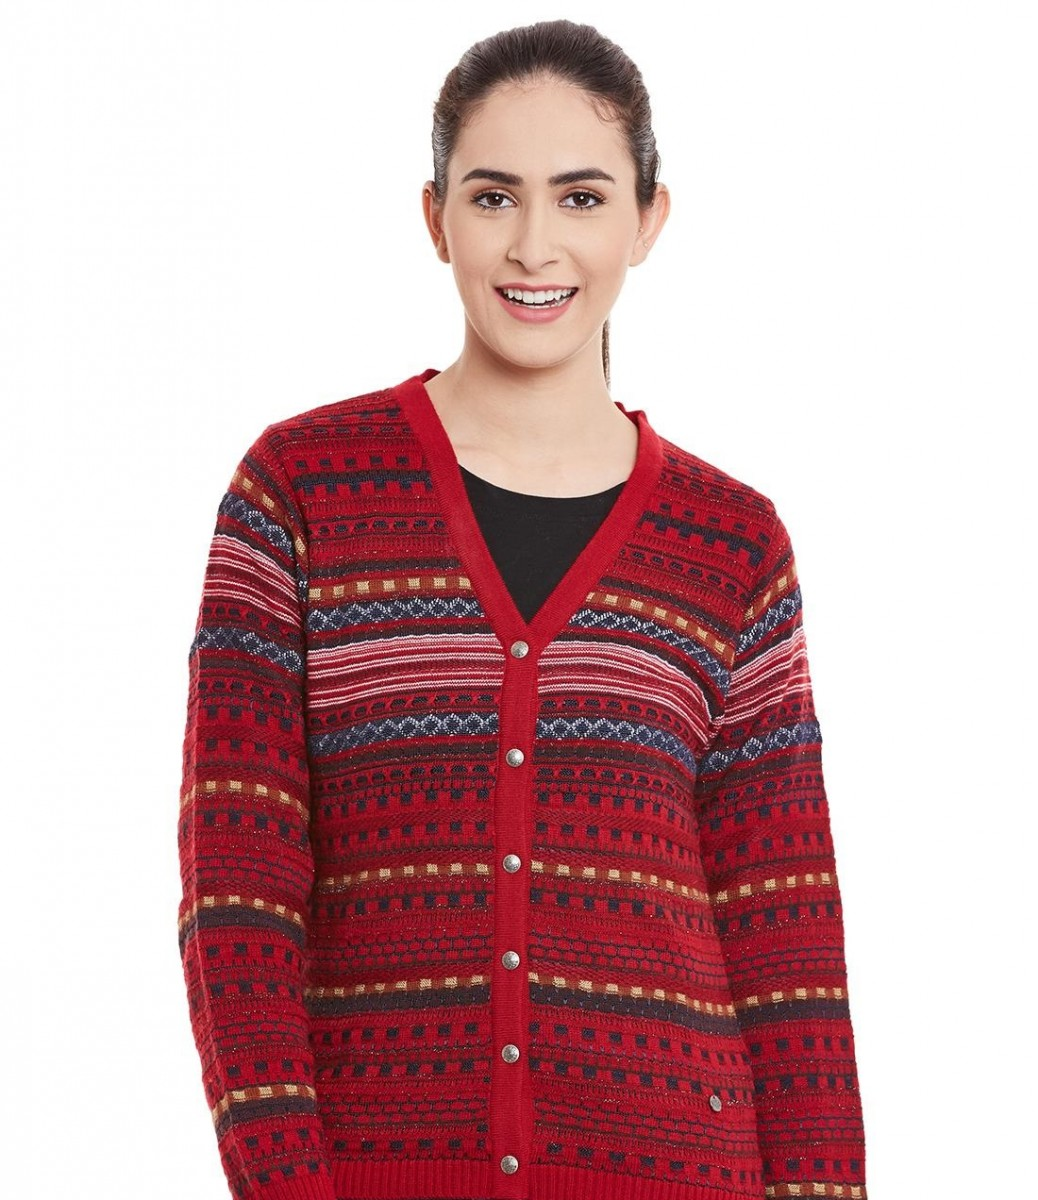 Monte Carlo multi colored red printed Winter cardigan